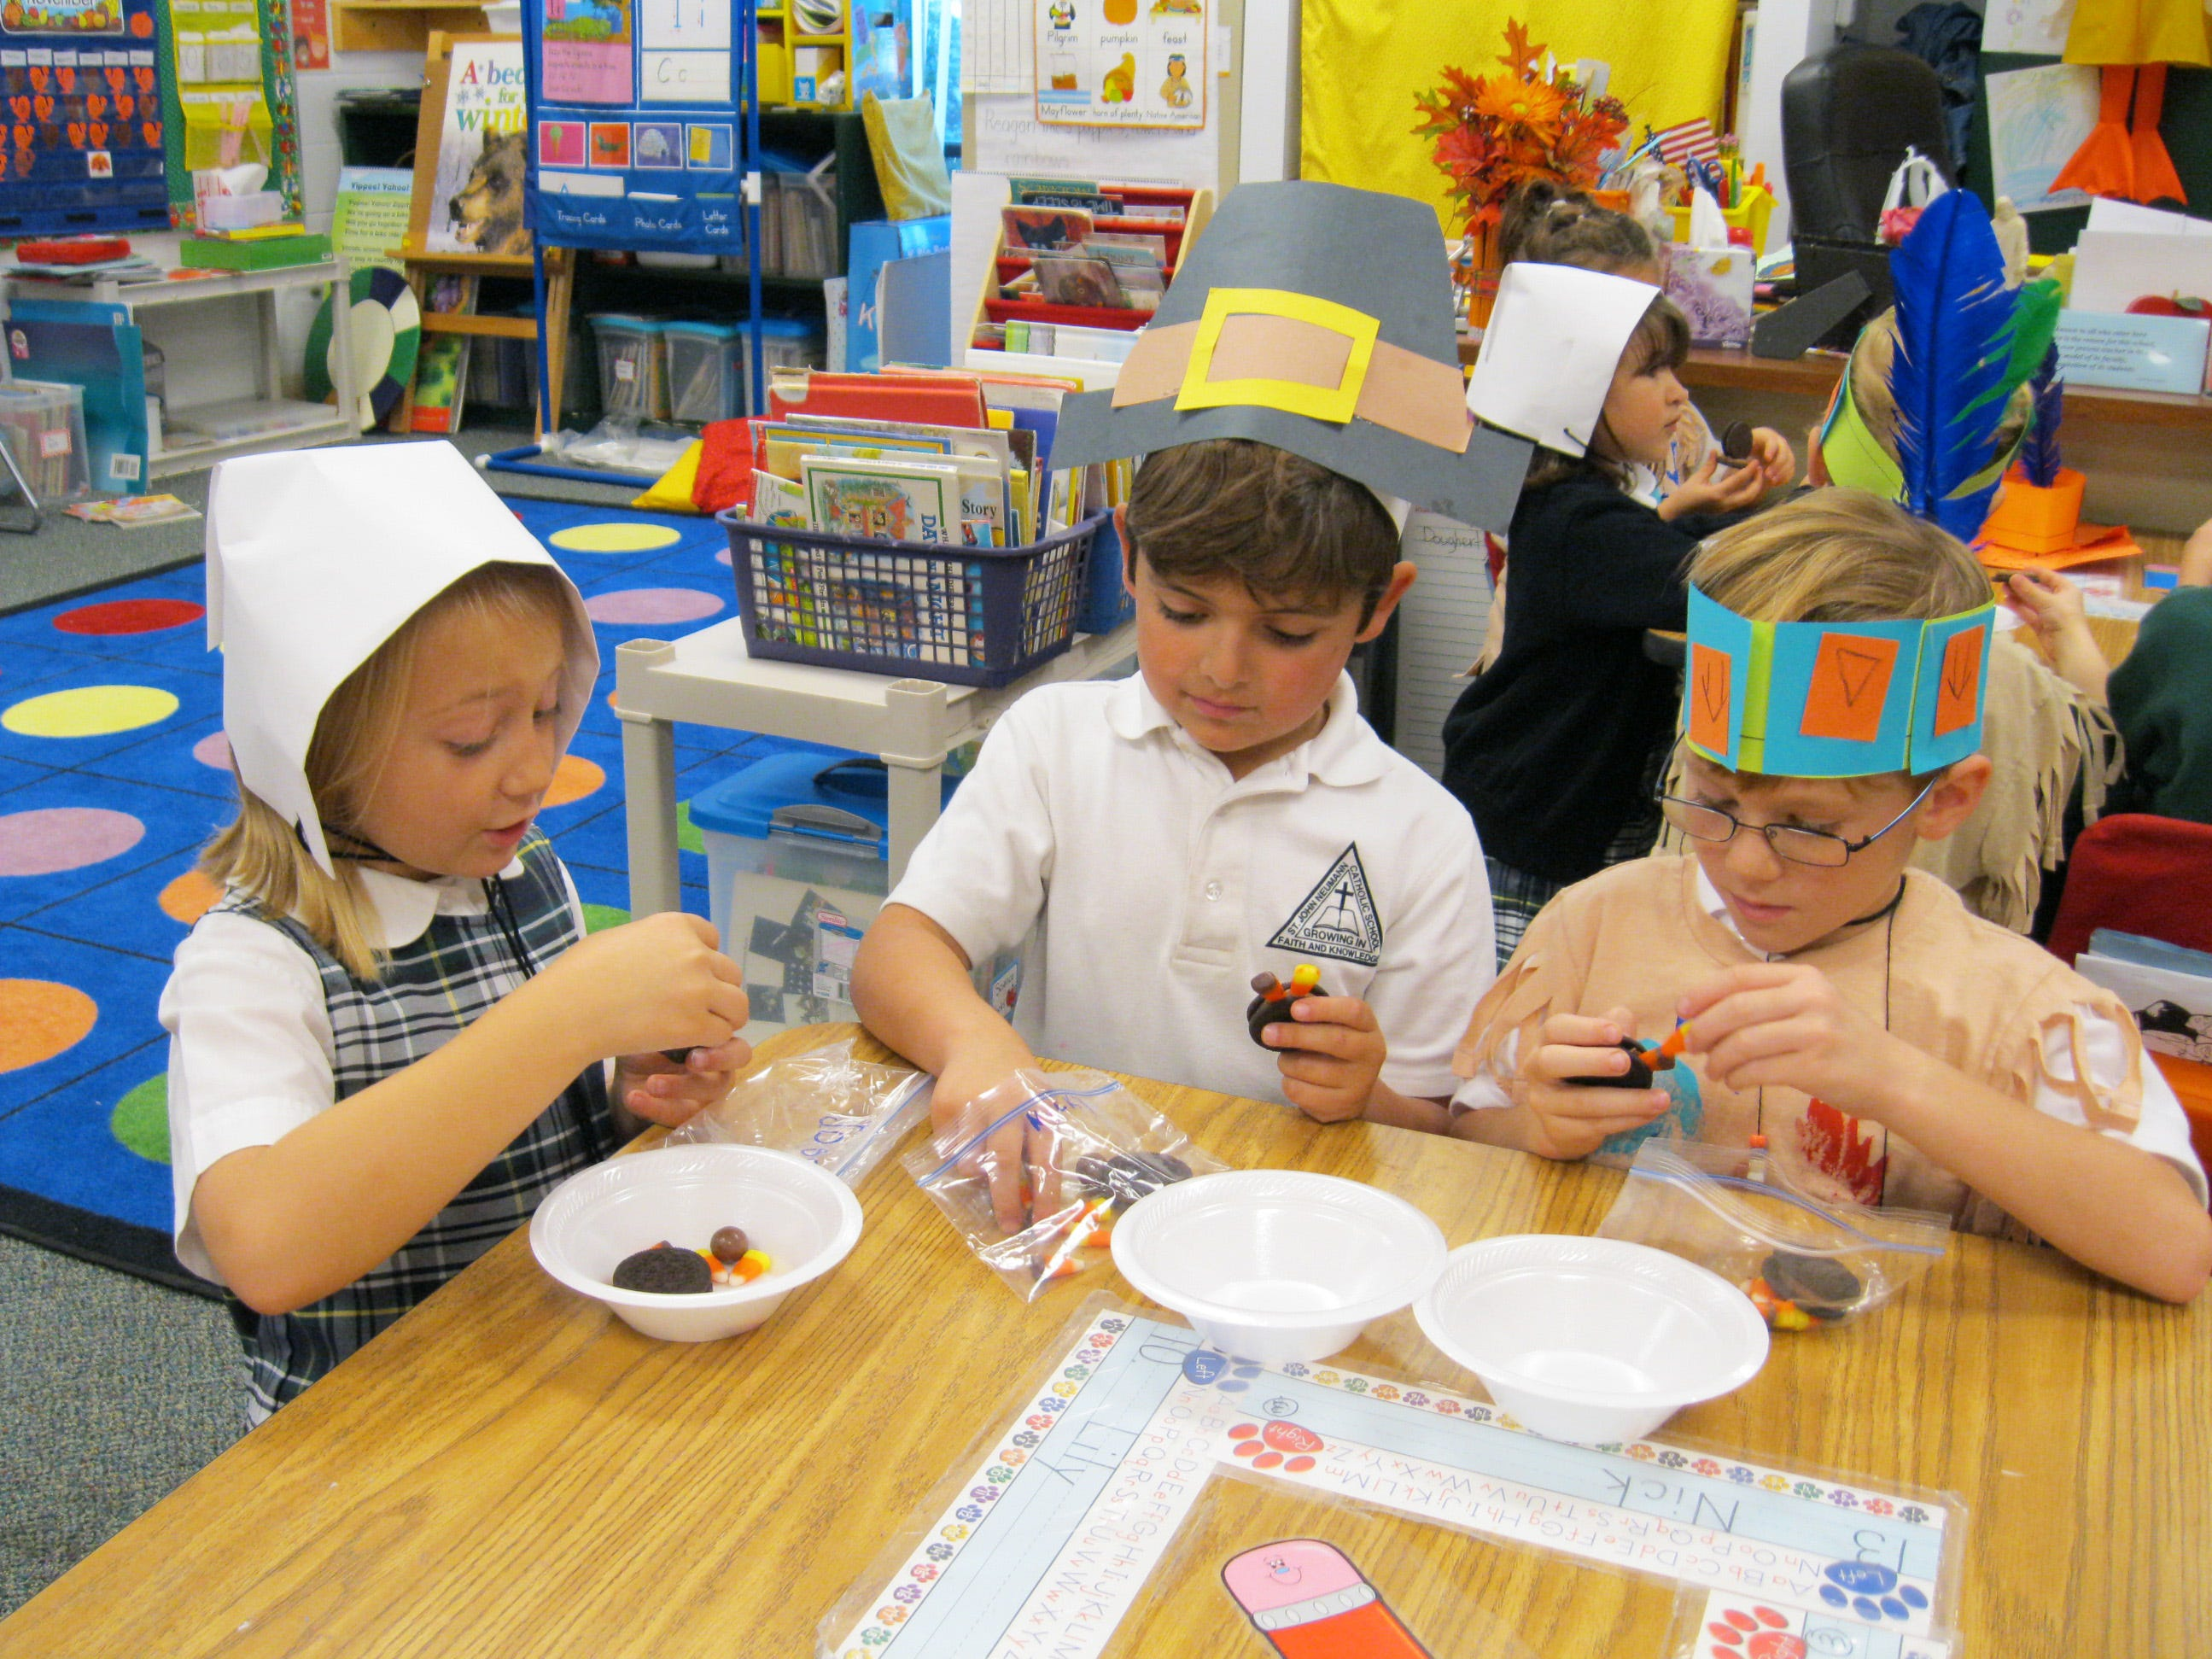 The kindergarten and first grade students at St. John Neumann Catholic School celebrated Thanksgiving by dressing as Native Americans and pilgrims, eating lunch, playing, singing and praying together. From left, Josephine Kelley, Nicky Molino and Nick Gerkins create turkeys together.